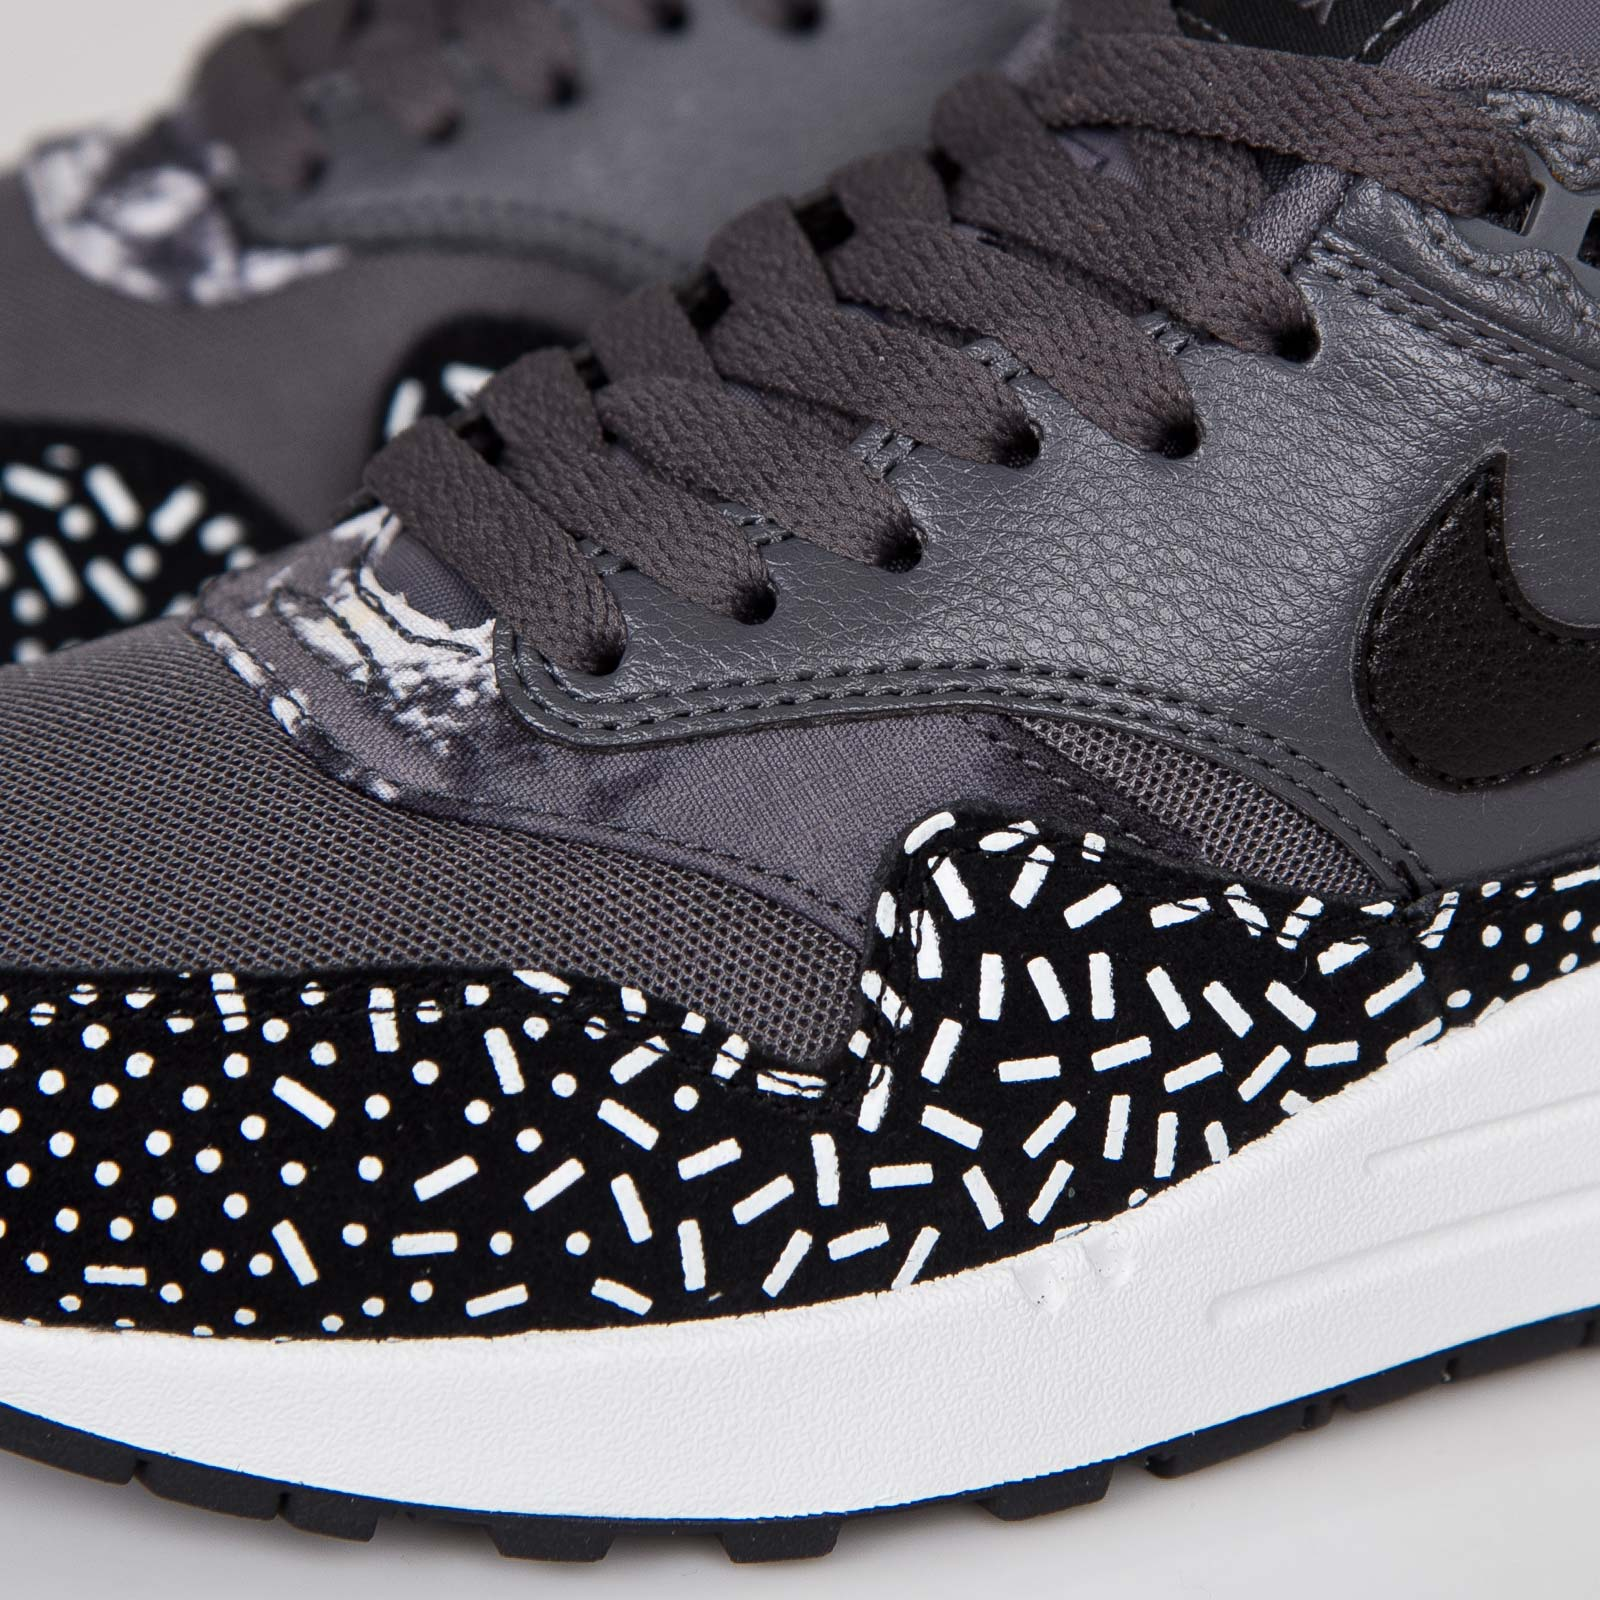 brand new e1a33 6305c Nike Wmns Air Max 1 Print - 528898-001 - Sneakersnstuff   sneakers    streetwear online since 1999